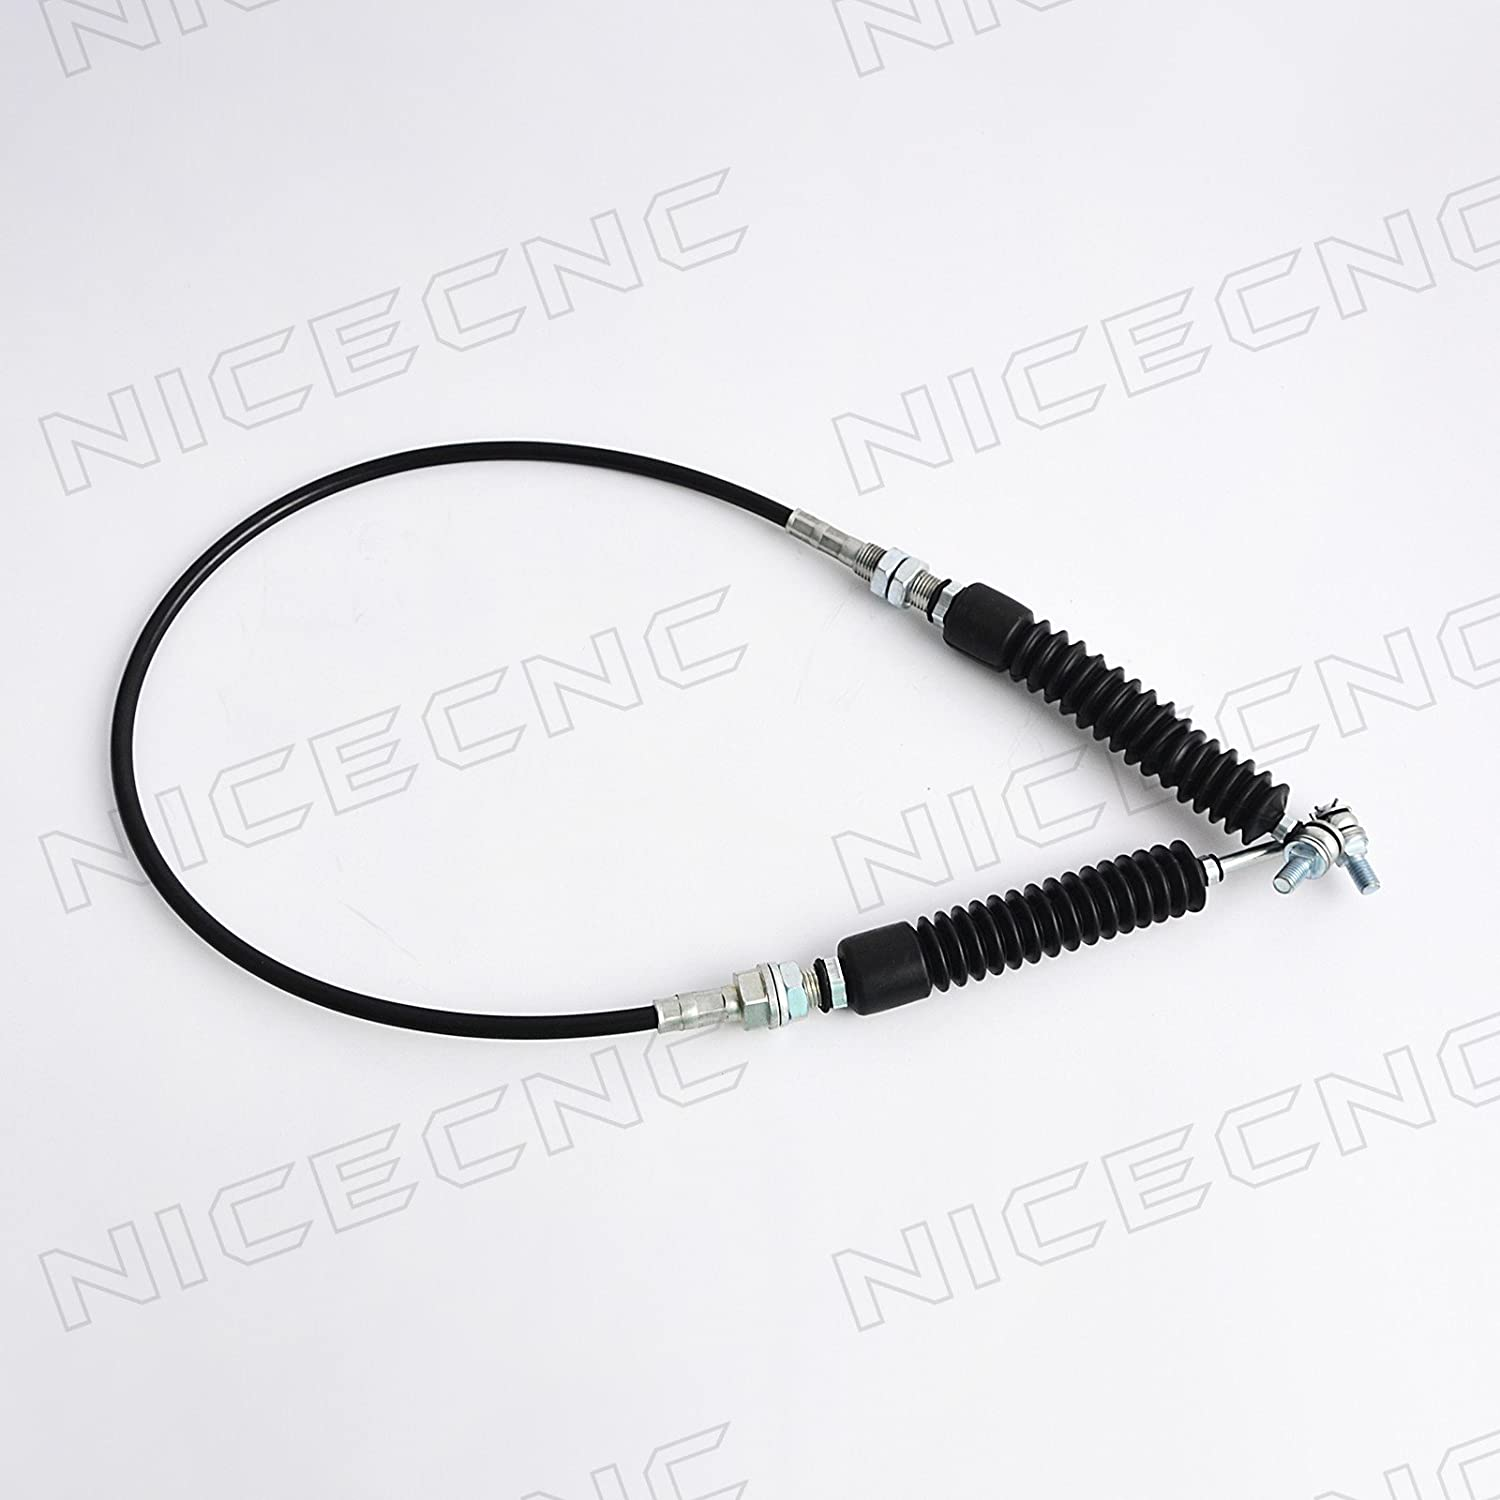 NICECNC Gear Selector Shift Control Cable Compatible with Polari